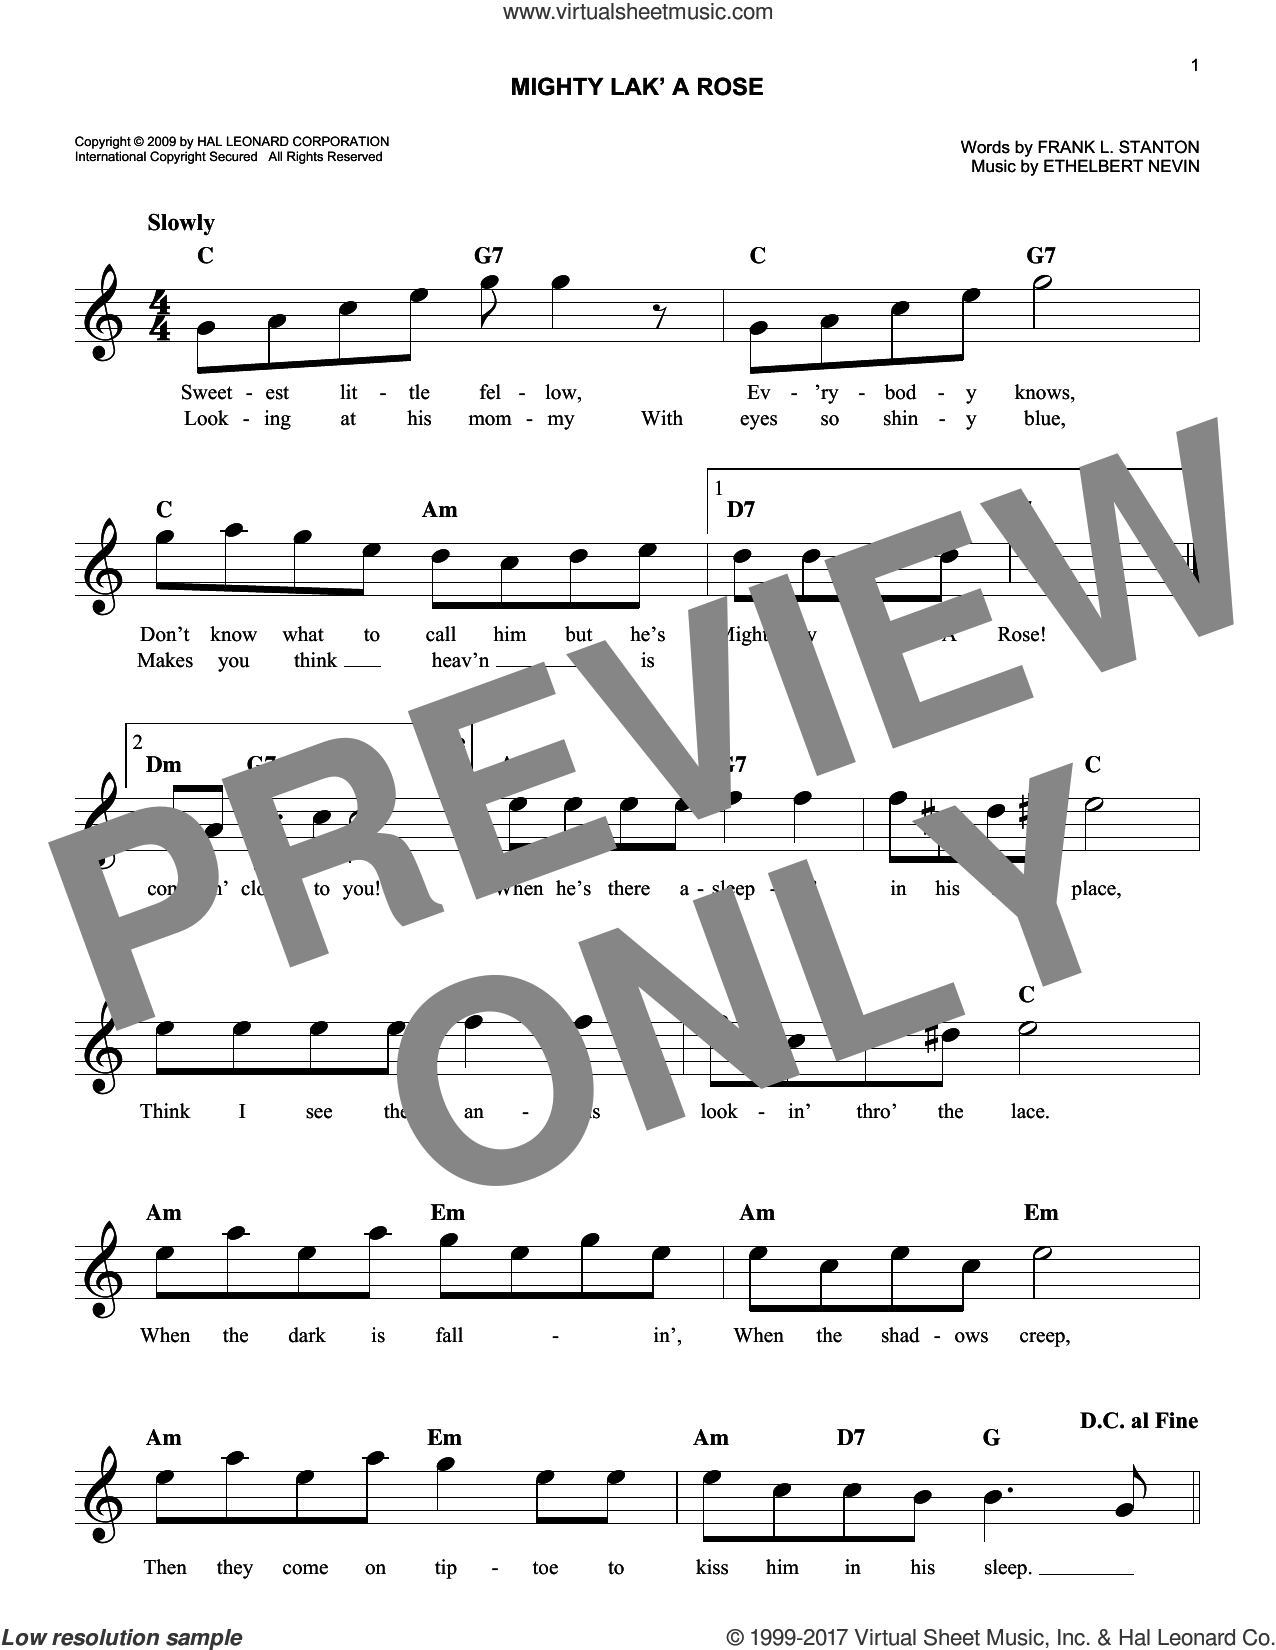 Mighty Lak' A Rose sheet music for voice and other instruments (fake book) by Ethelbert Nevin and Frank L. Stanton, intermediate skill level